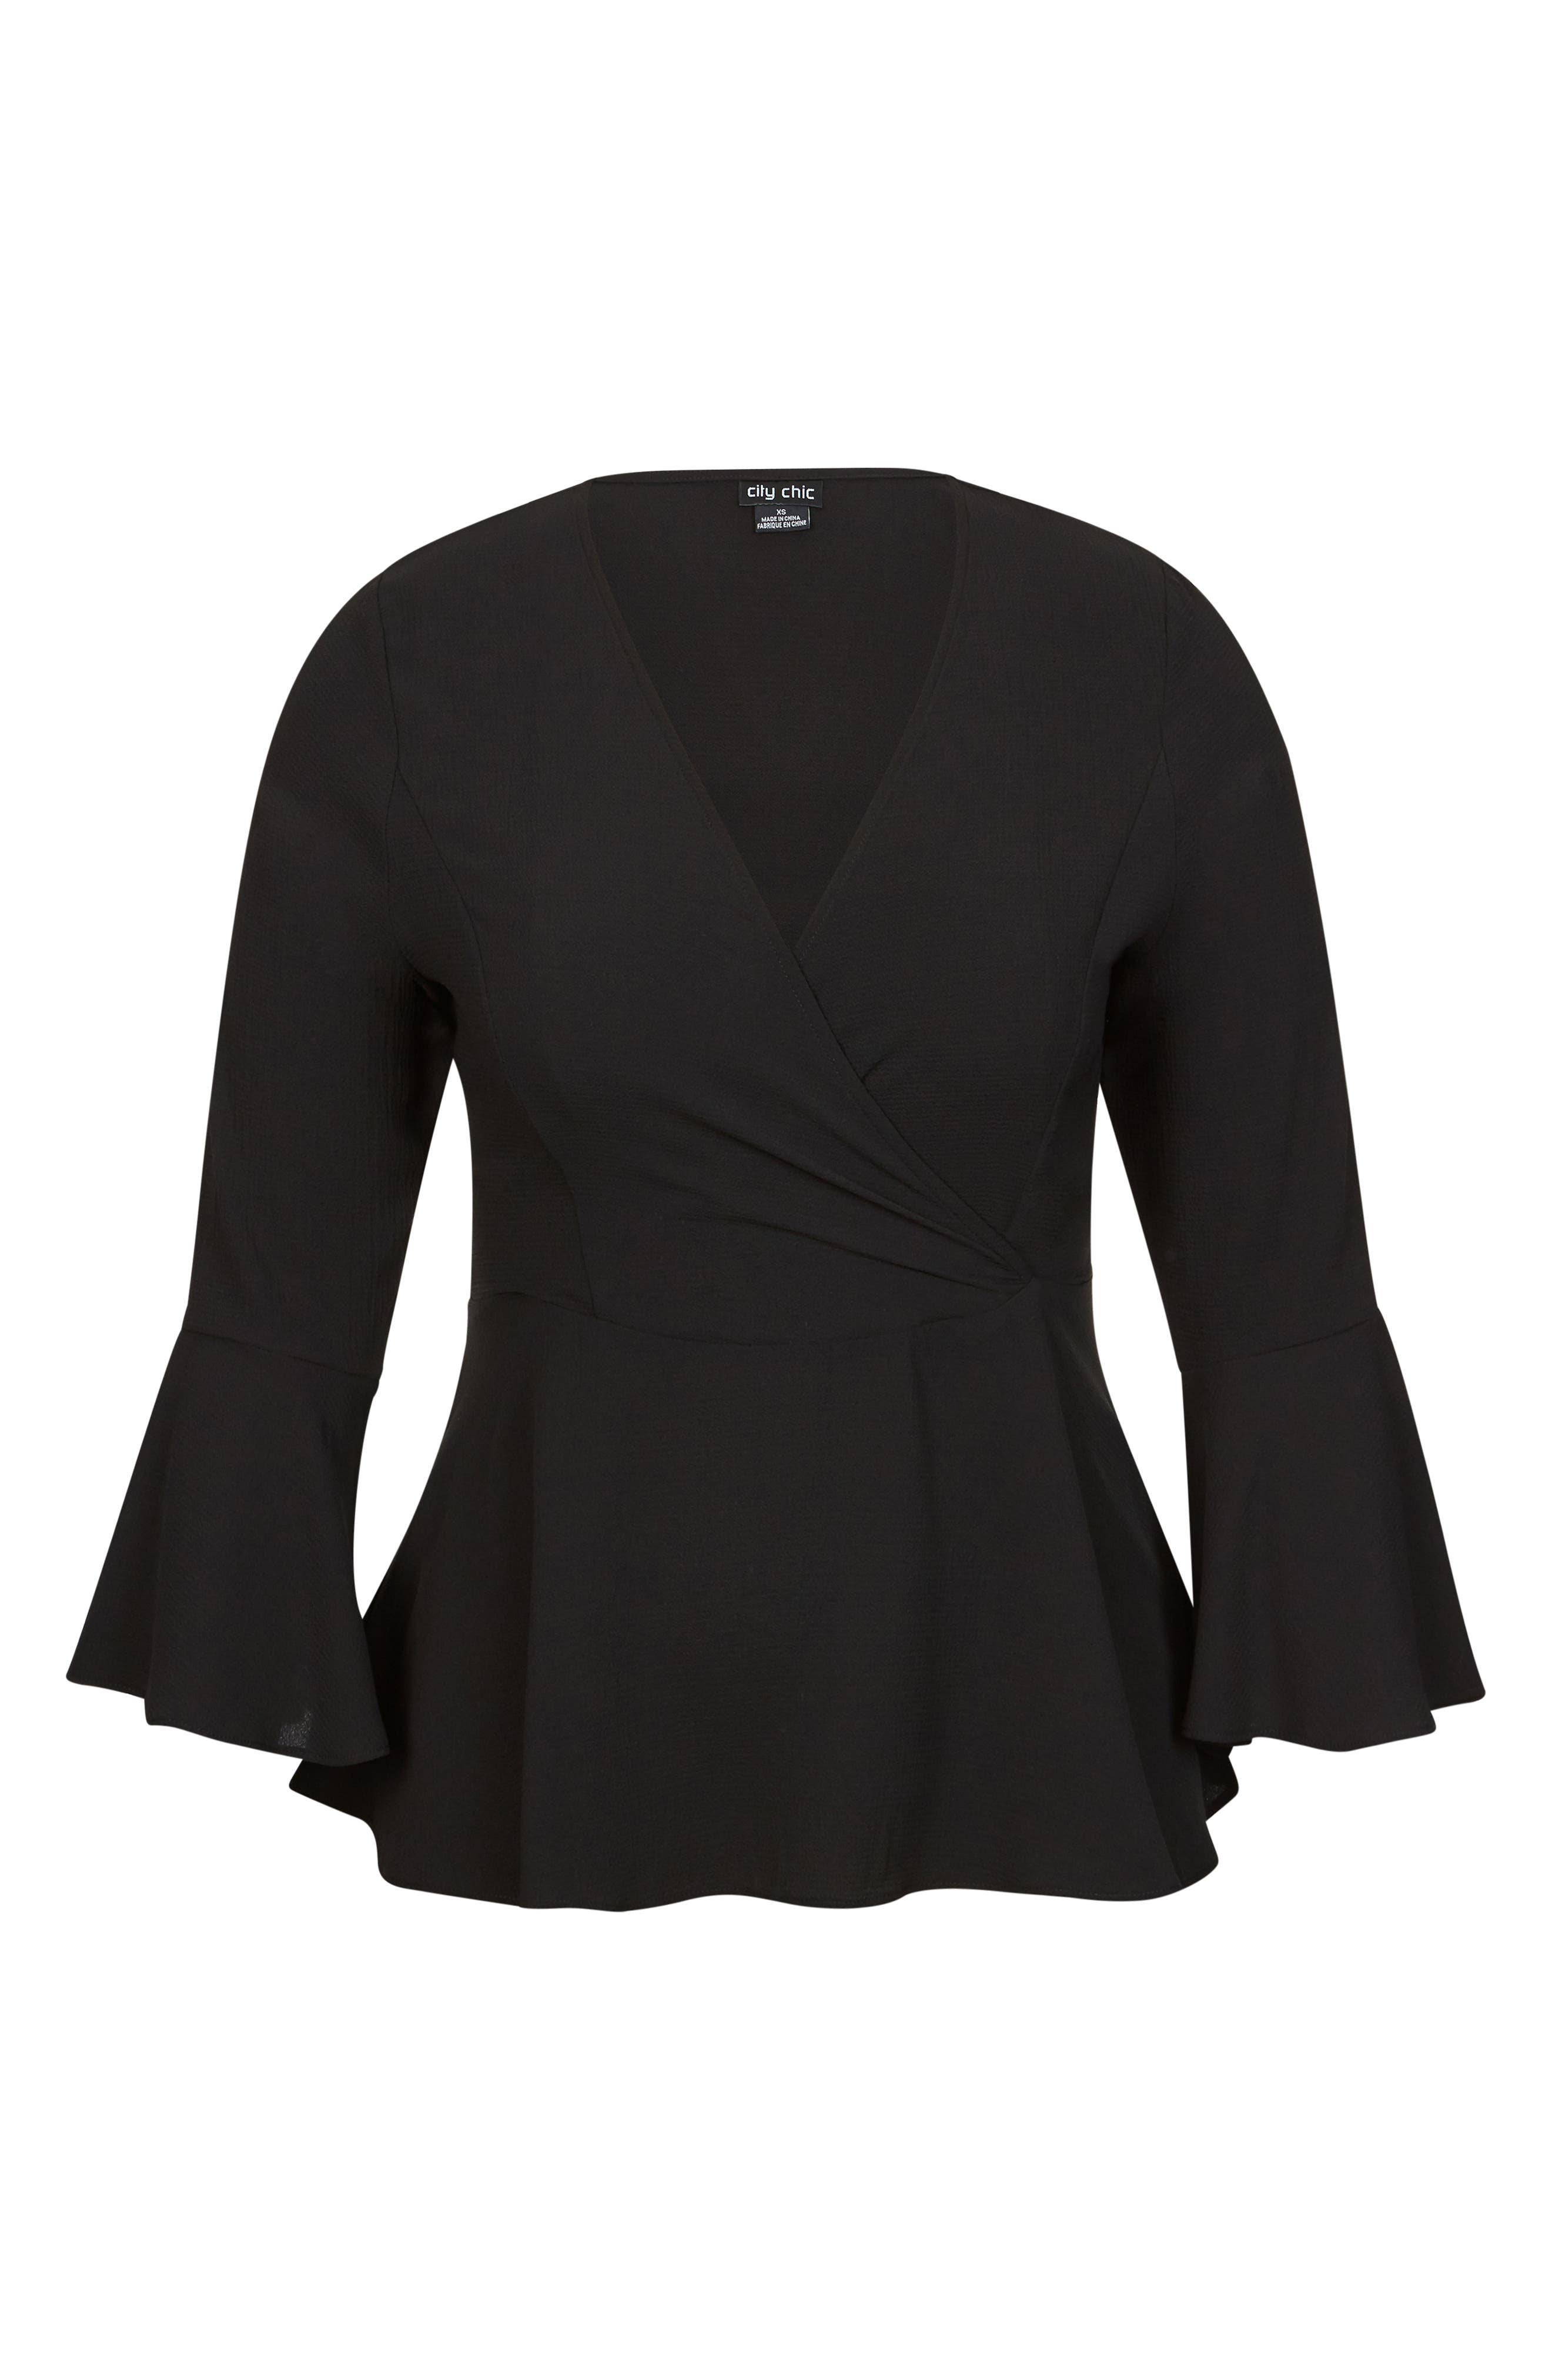 Sweetly Tied Top,                             Alternate thumbnail 3, color,                             BLACK